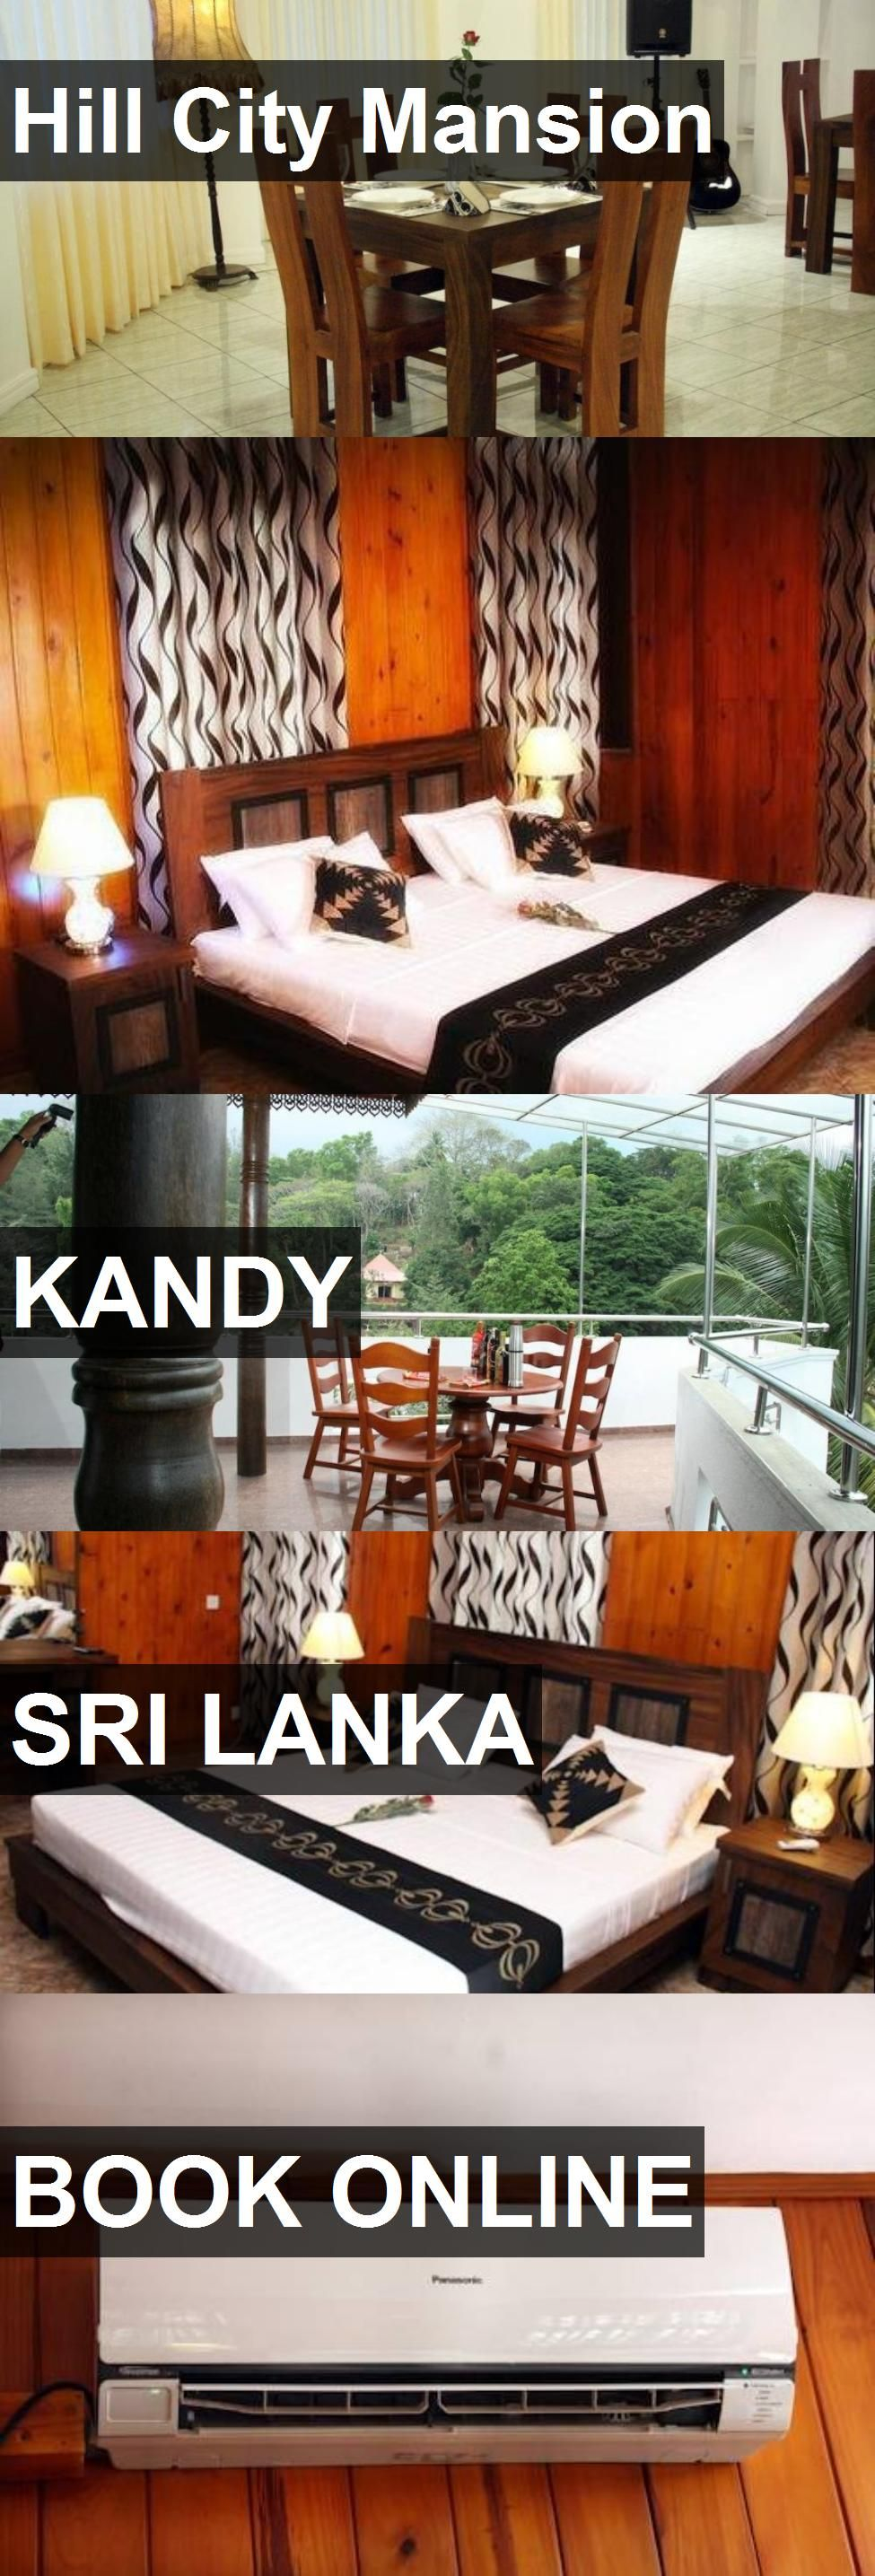 Hotel Hill City Mansion in Kandy, Sri Lanka. For more